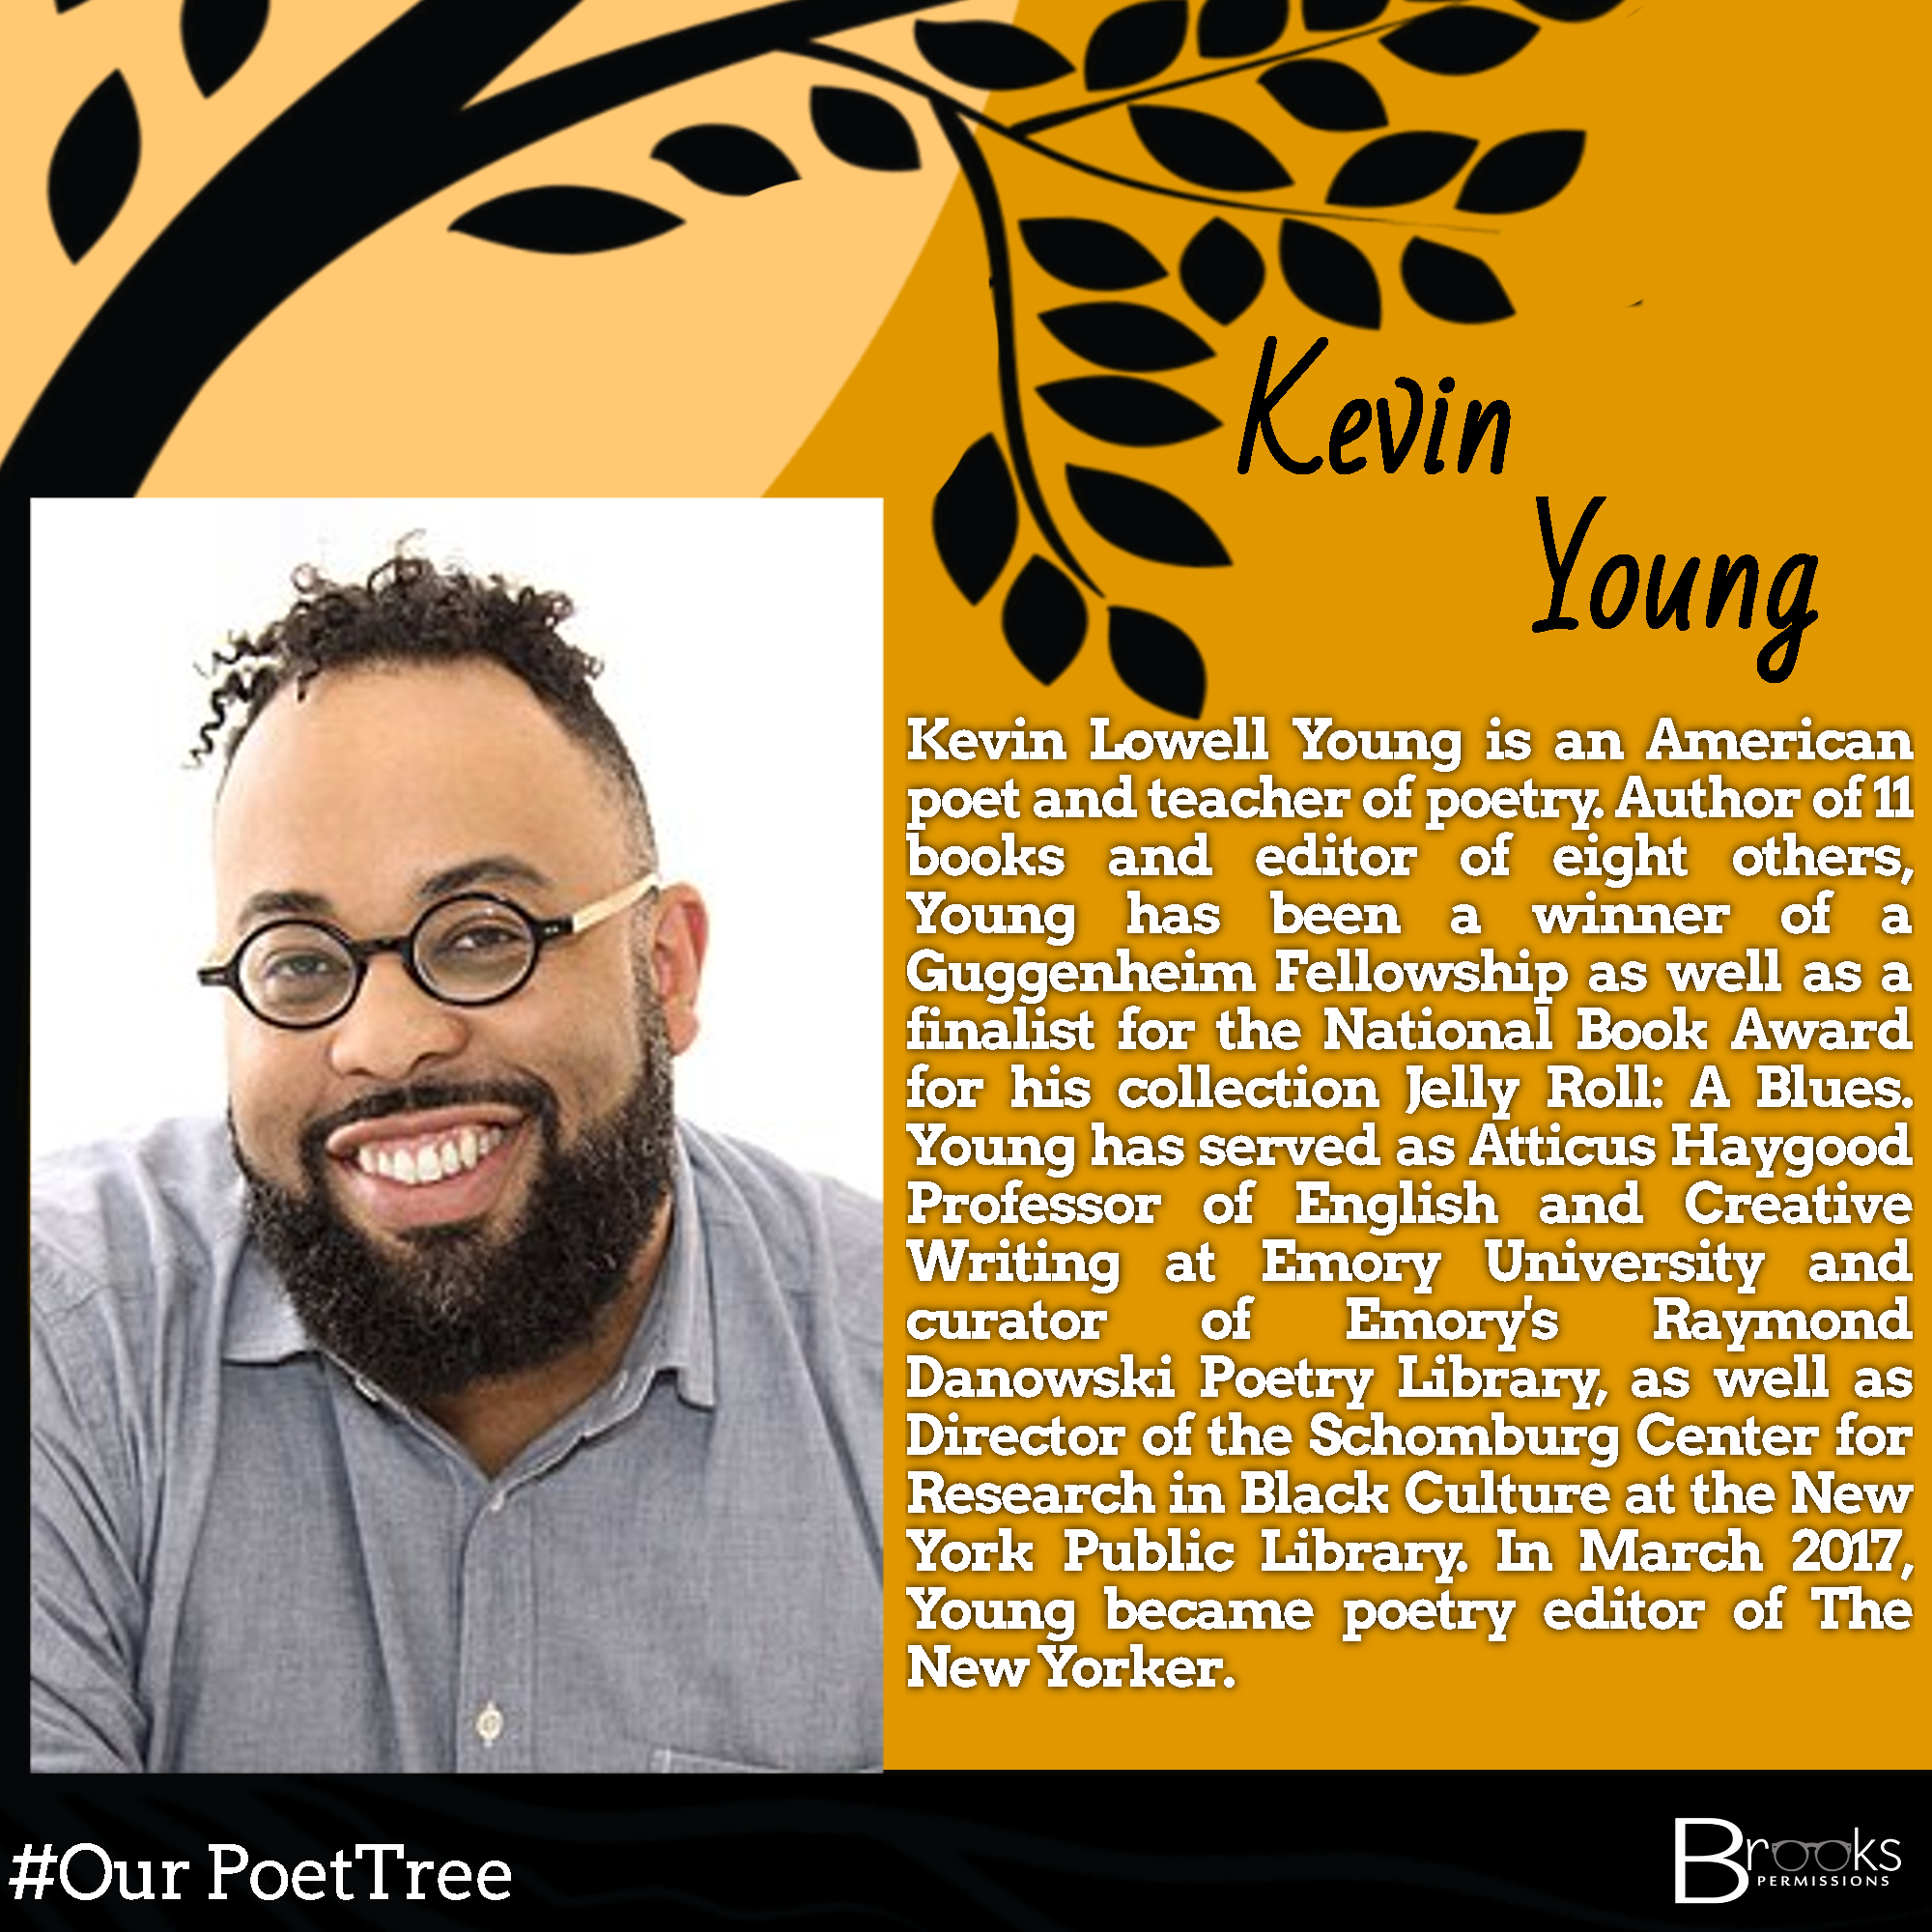 Kevin Lowell Young